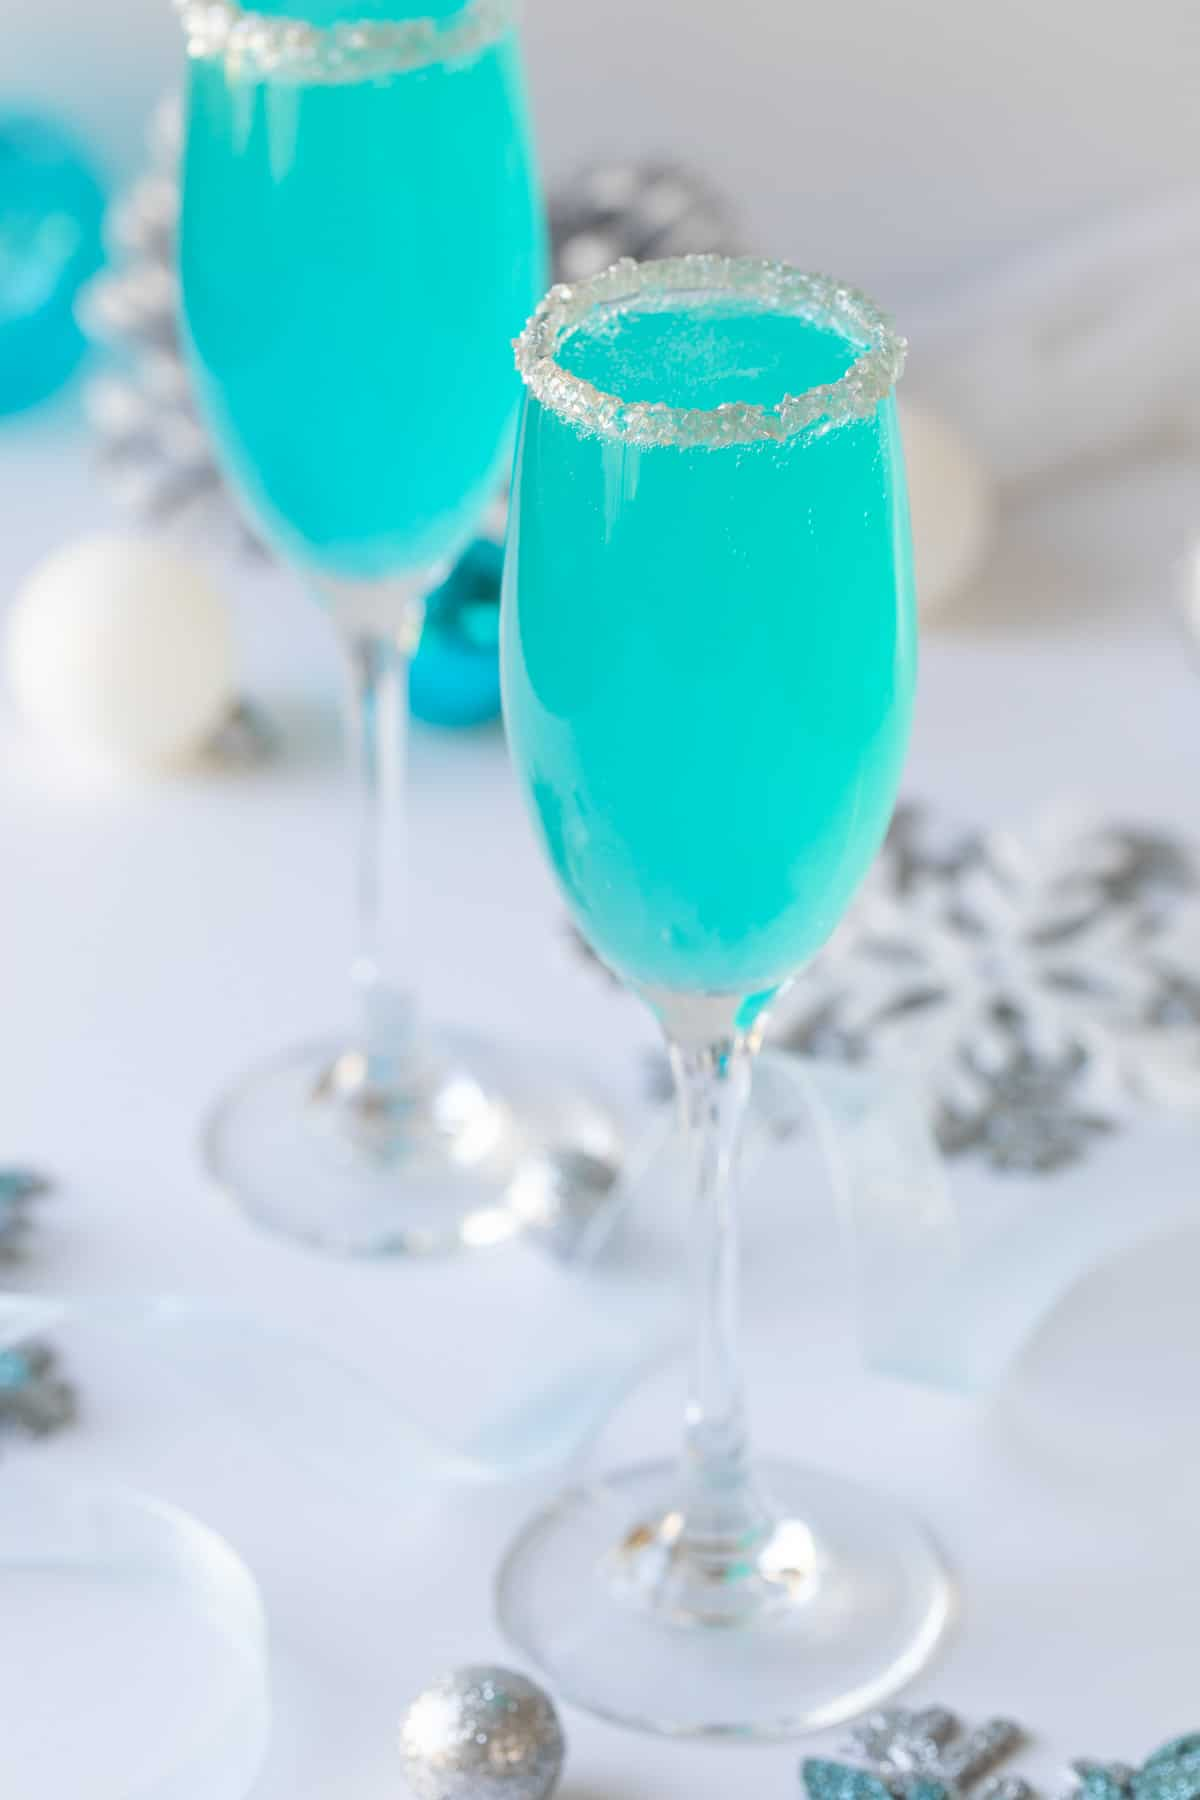 Closeup view of a Tiffany blue mimosa in a champagne flute rimmed with sugar.